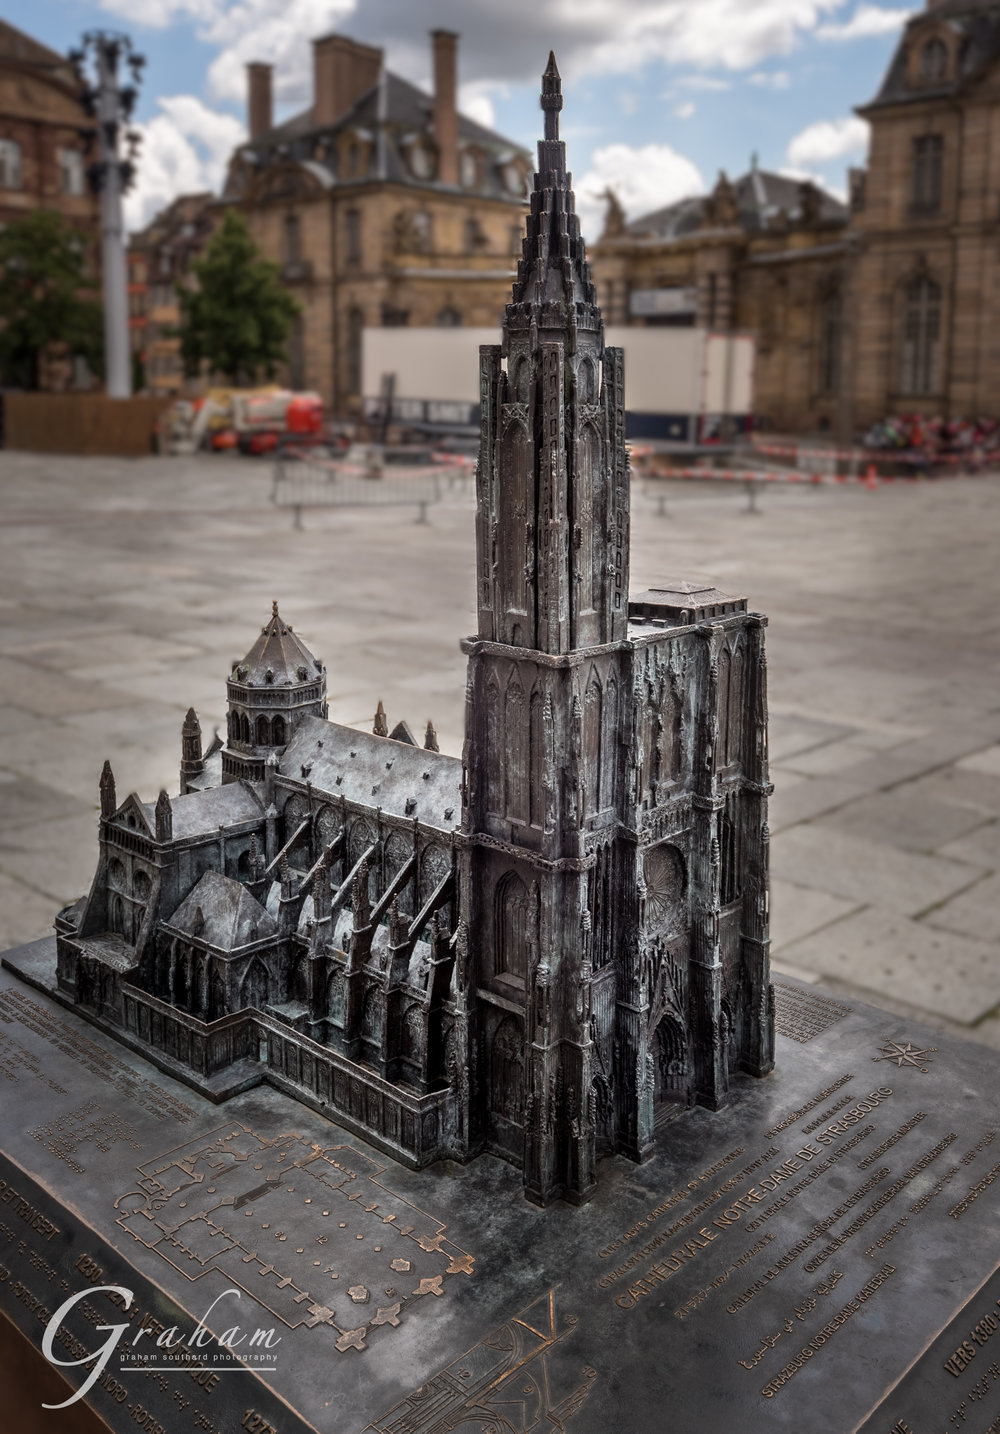 A model of the cathedral